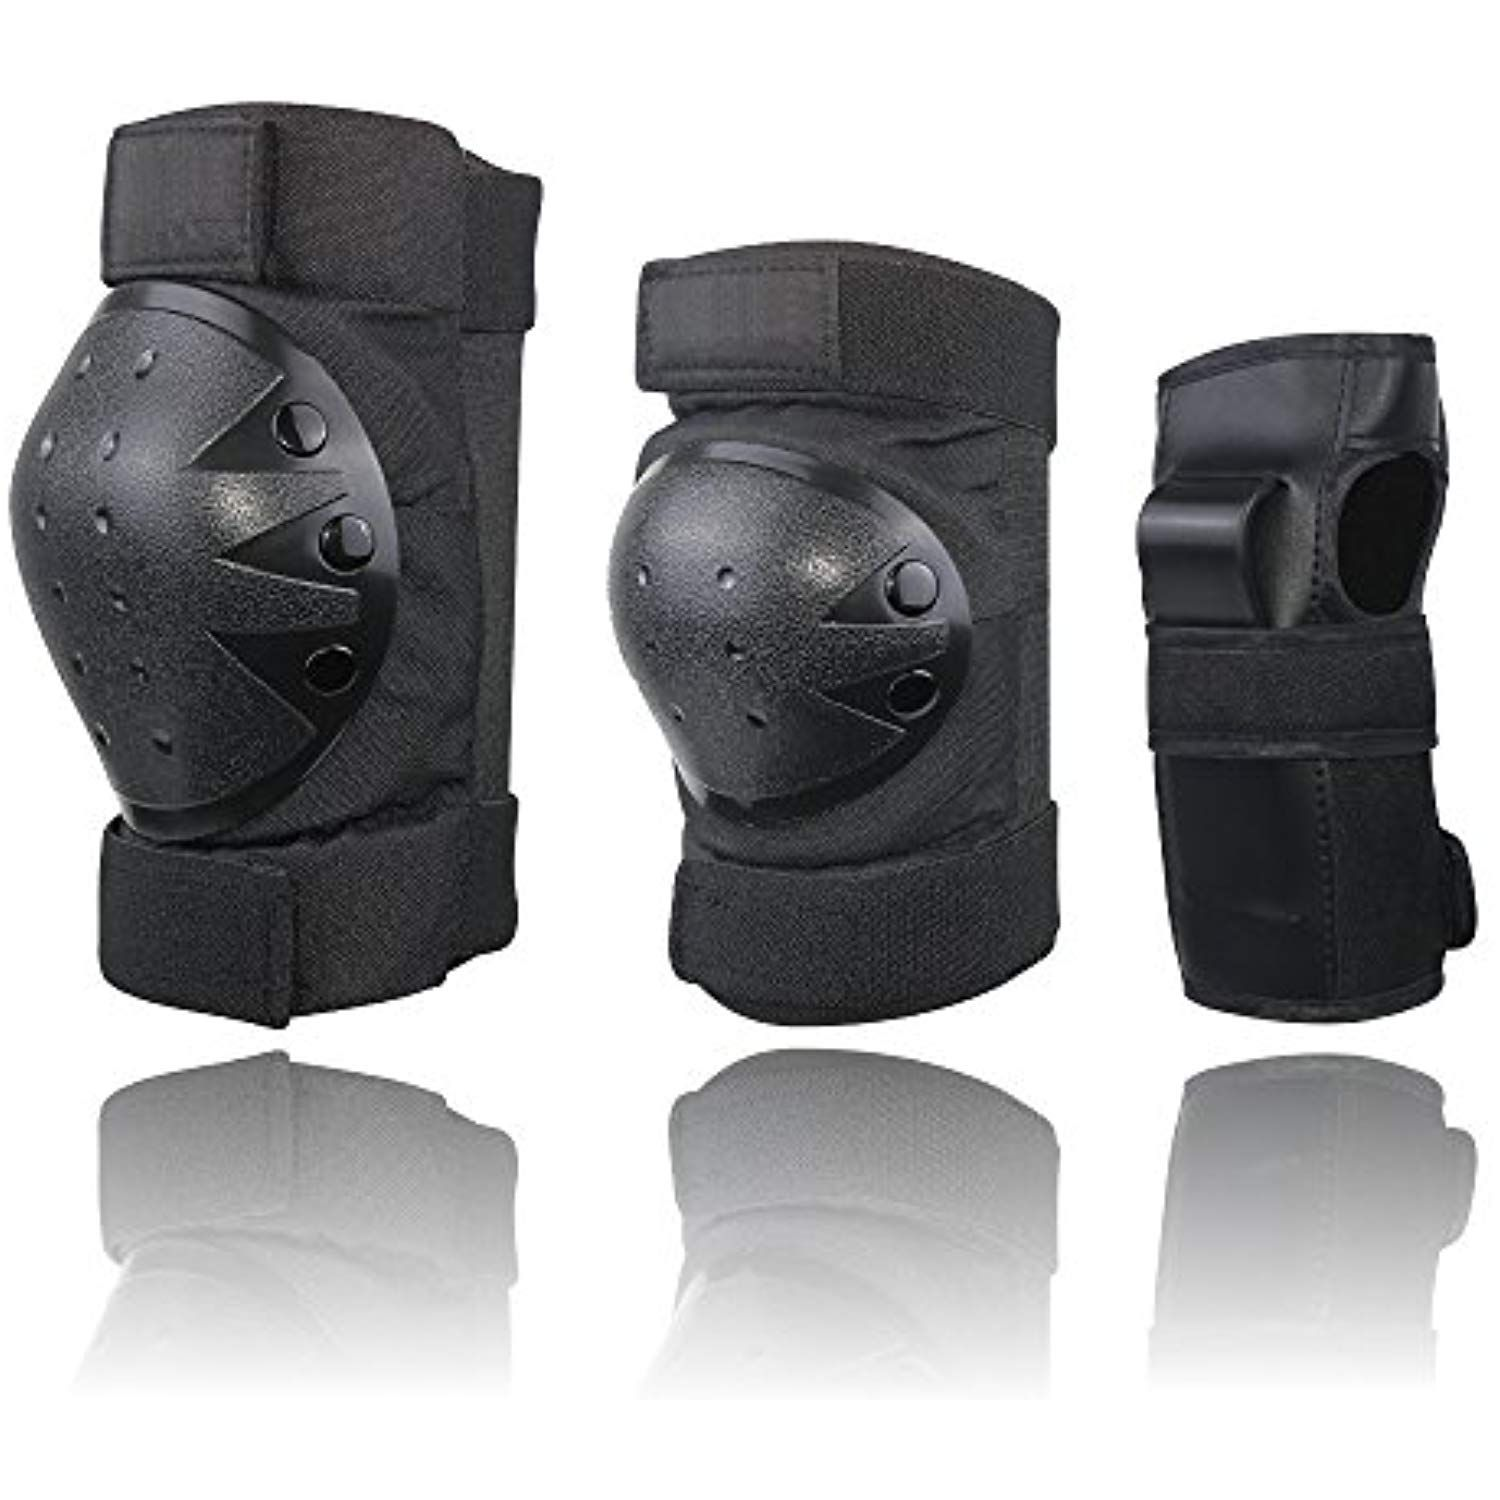 Cctro child adult protective gear set adjustable knee